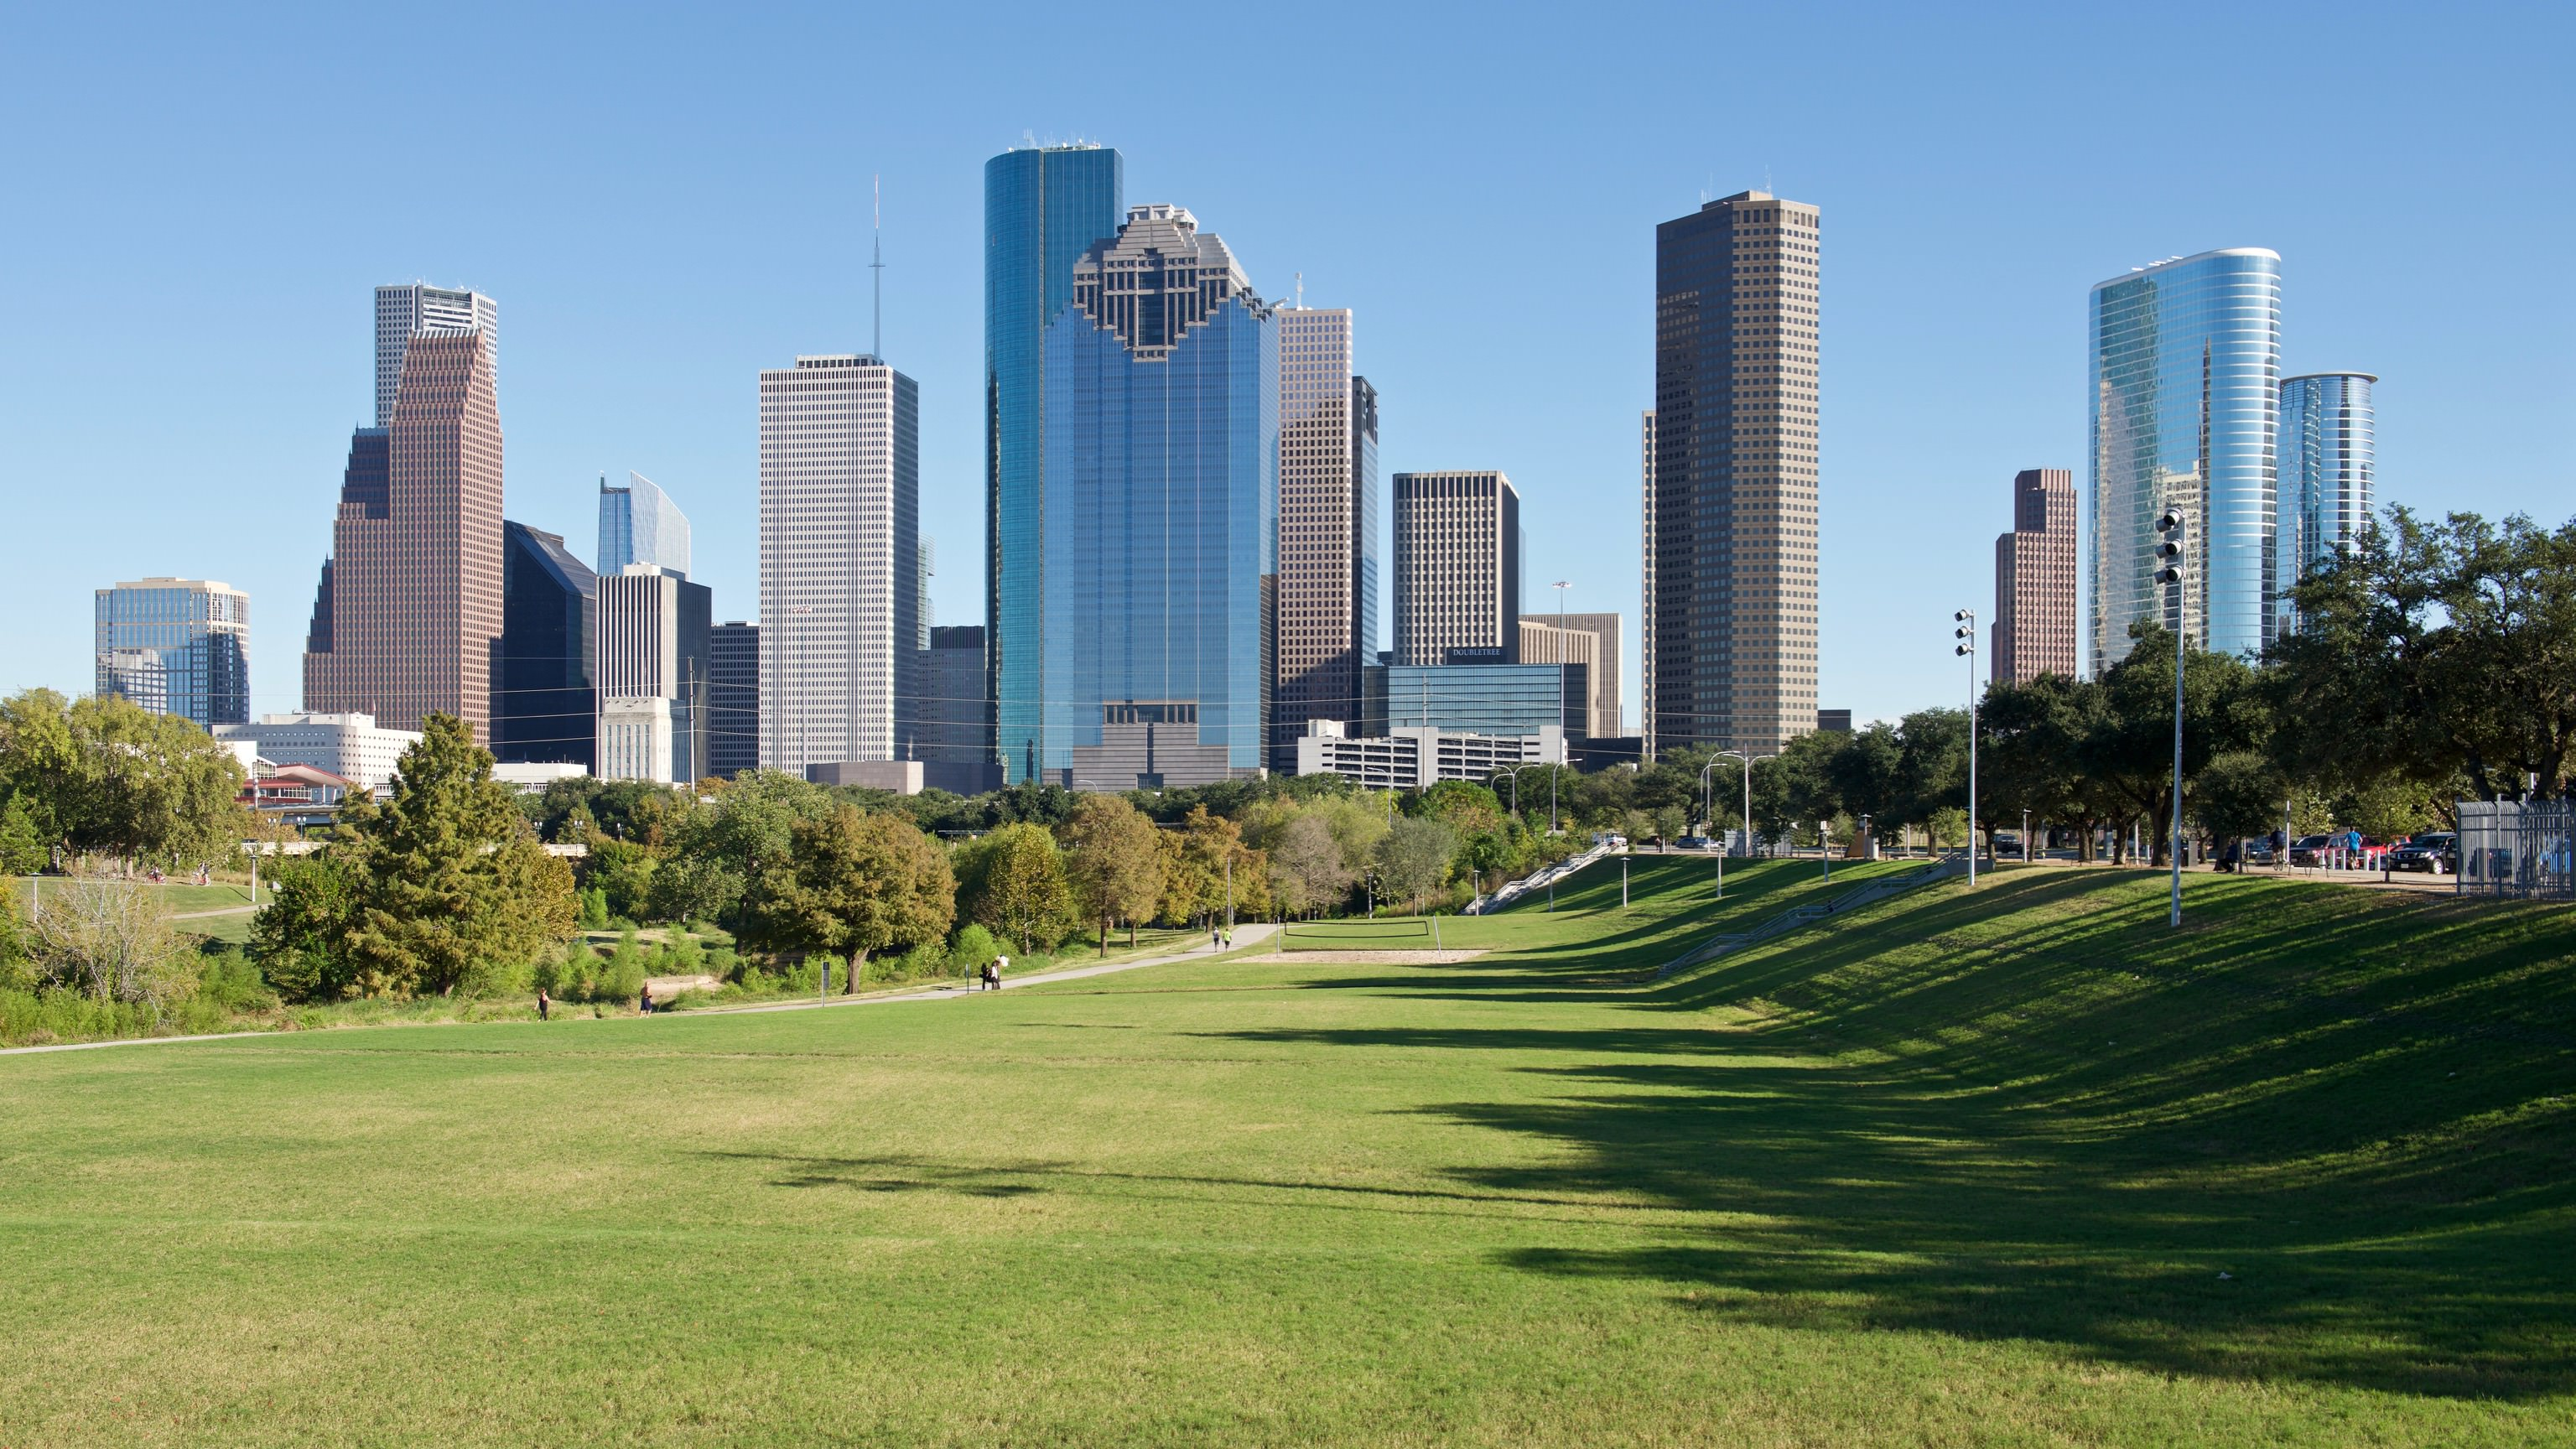 Small business program Build Up Houston application deadline is today, Nov. 30